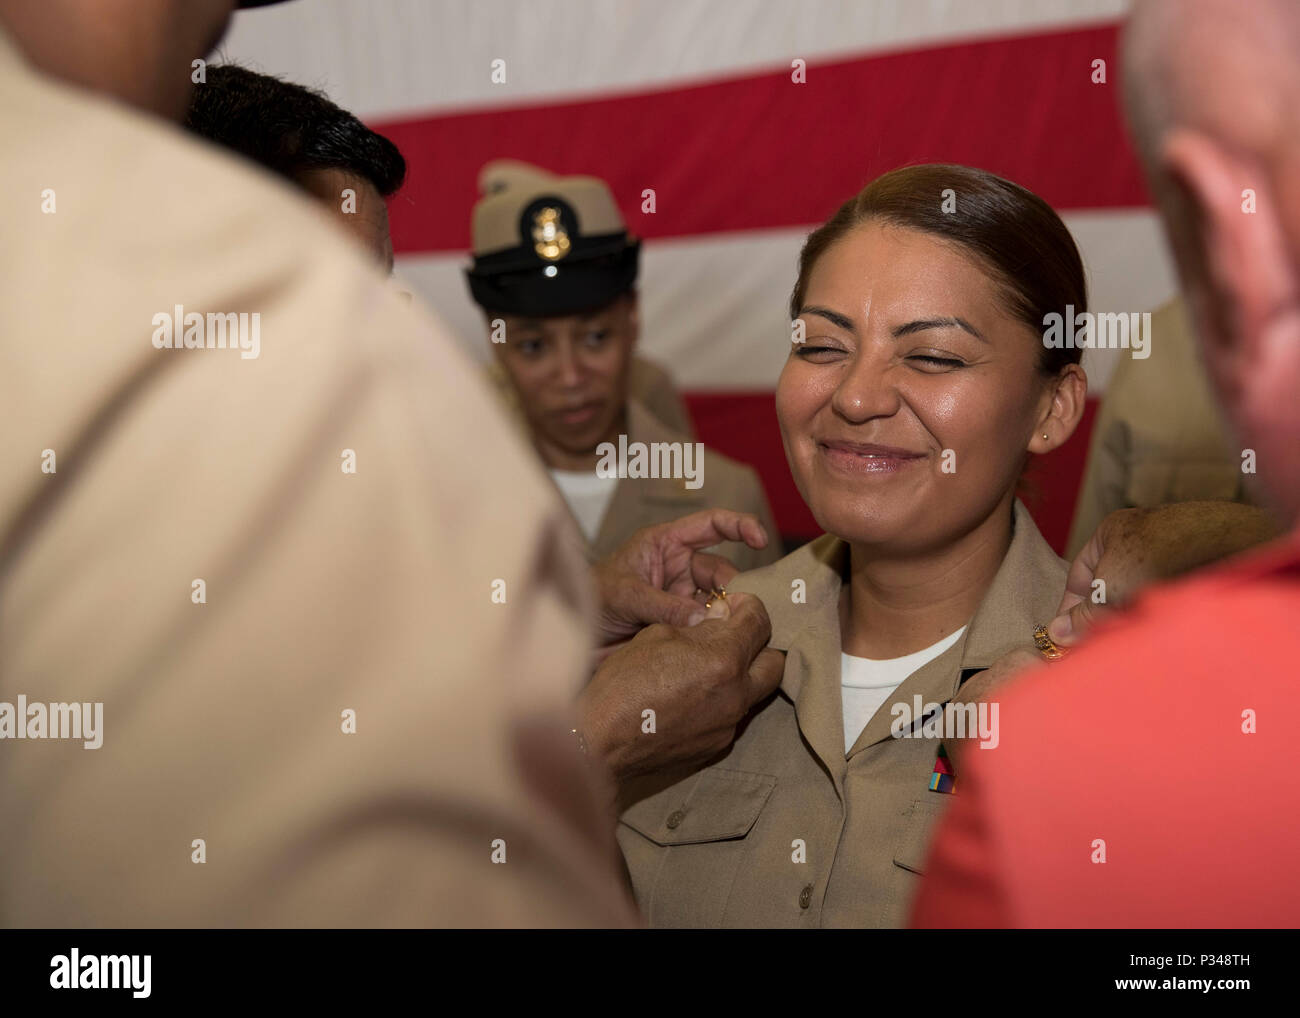 NORFOLK, Va. (June 12, 2018) -- Senior Chief Ship's Serviceman Angela Zamora, from Jersey City, New Jersey, assigned to USS Gerald R. Ford's (CVN 78) supply department, is pinned to her current rank by her family during a senior chief petty officer pinning ceremony in the ship's hangar bay. Ford had 14 chief petty officers selected to the rank of senior chief petty officer. (U.S. Navy photo by Mass Communication Specialist 3rd Class Ryan Carter) - Stock Image